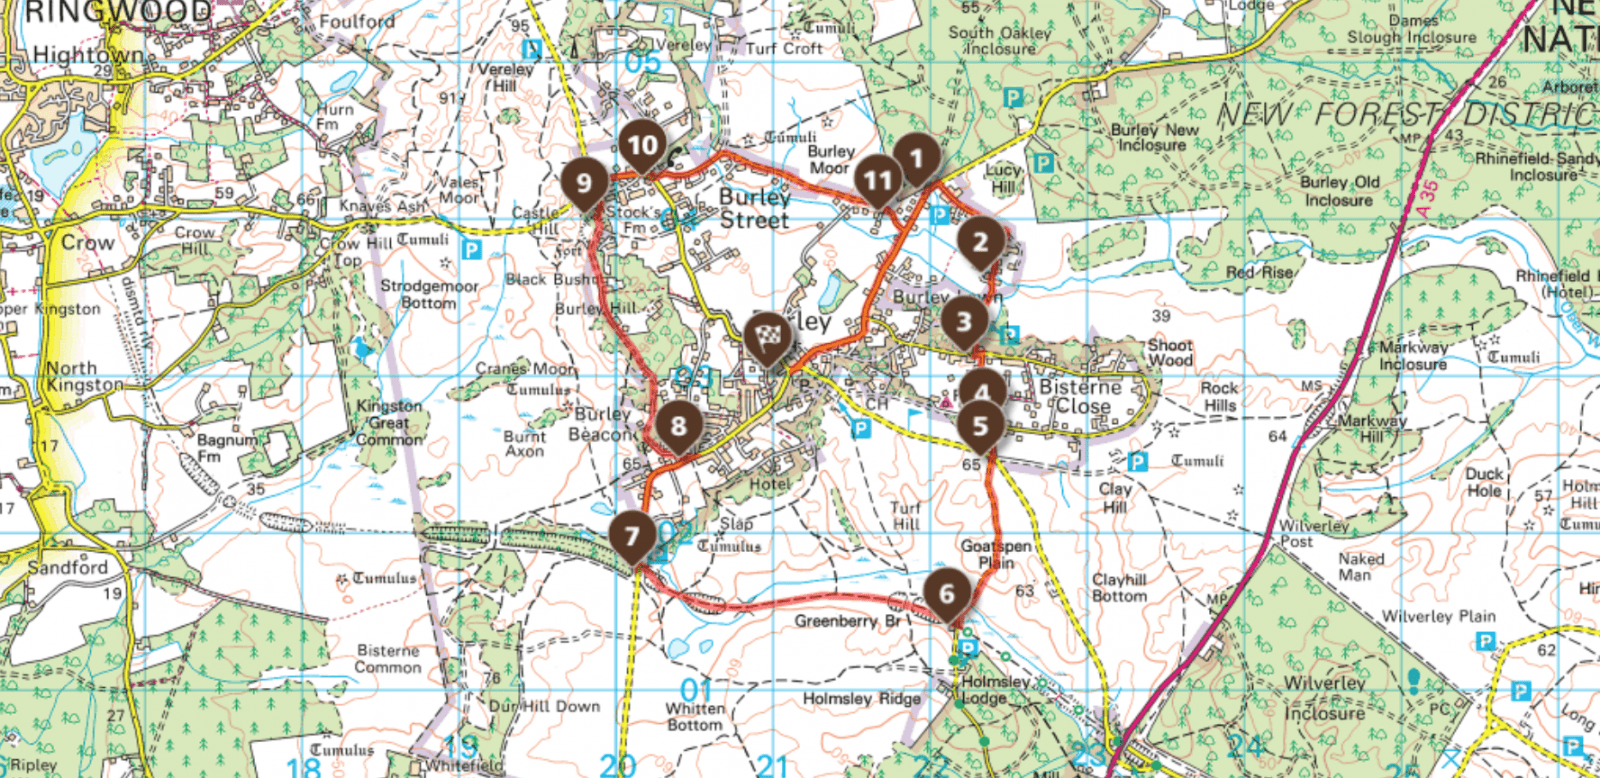 New Forest Cycle Route Map